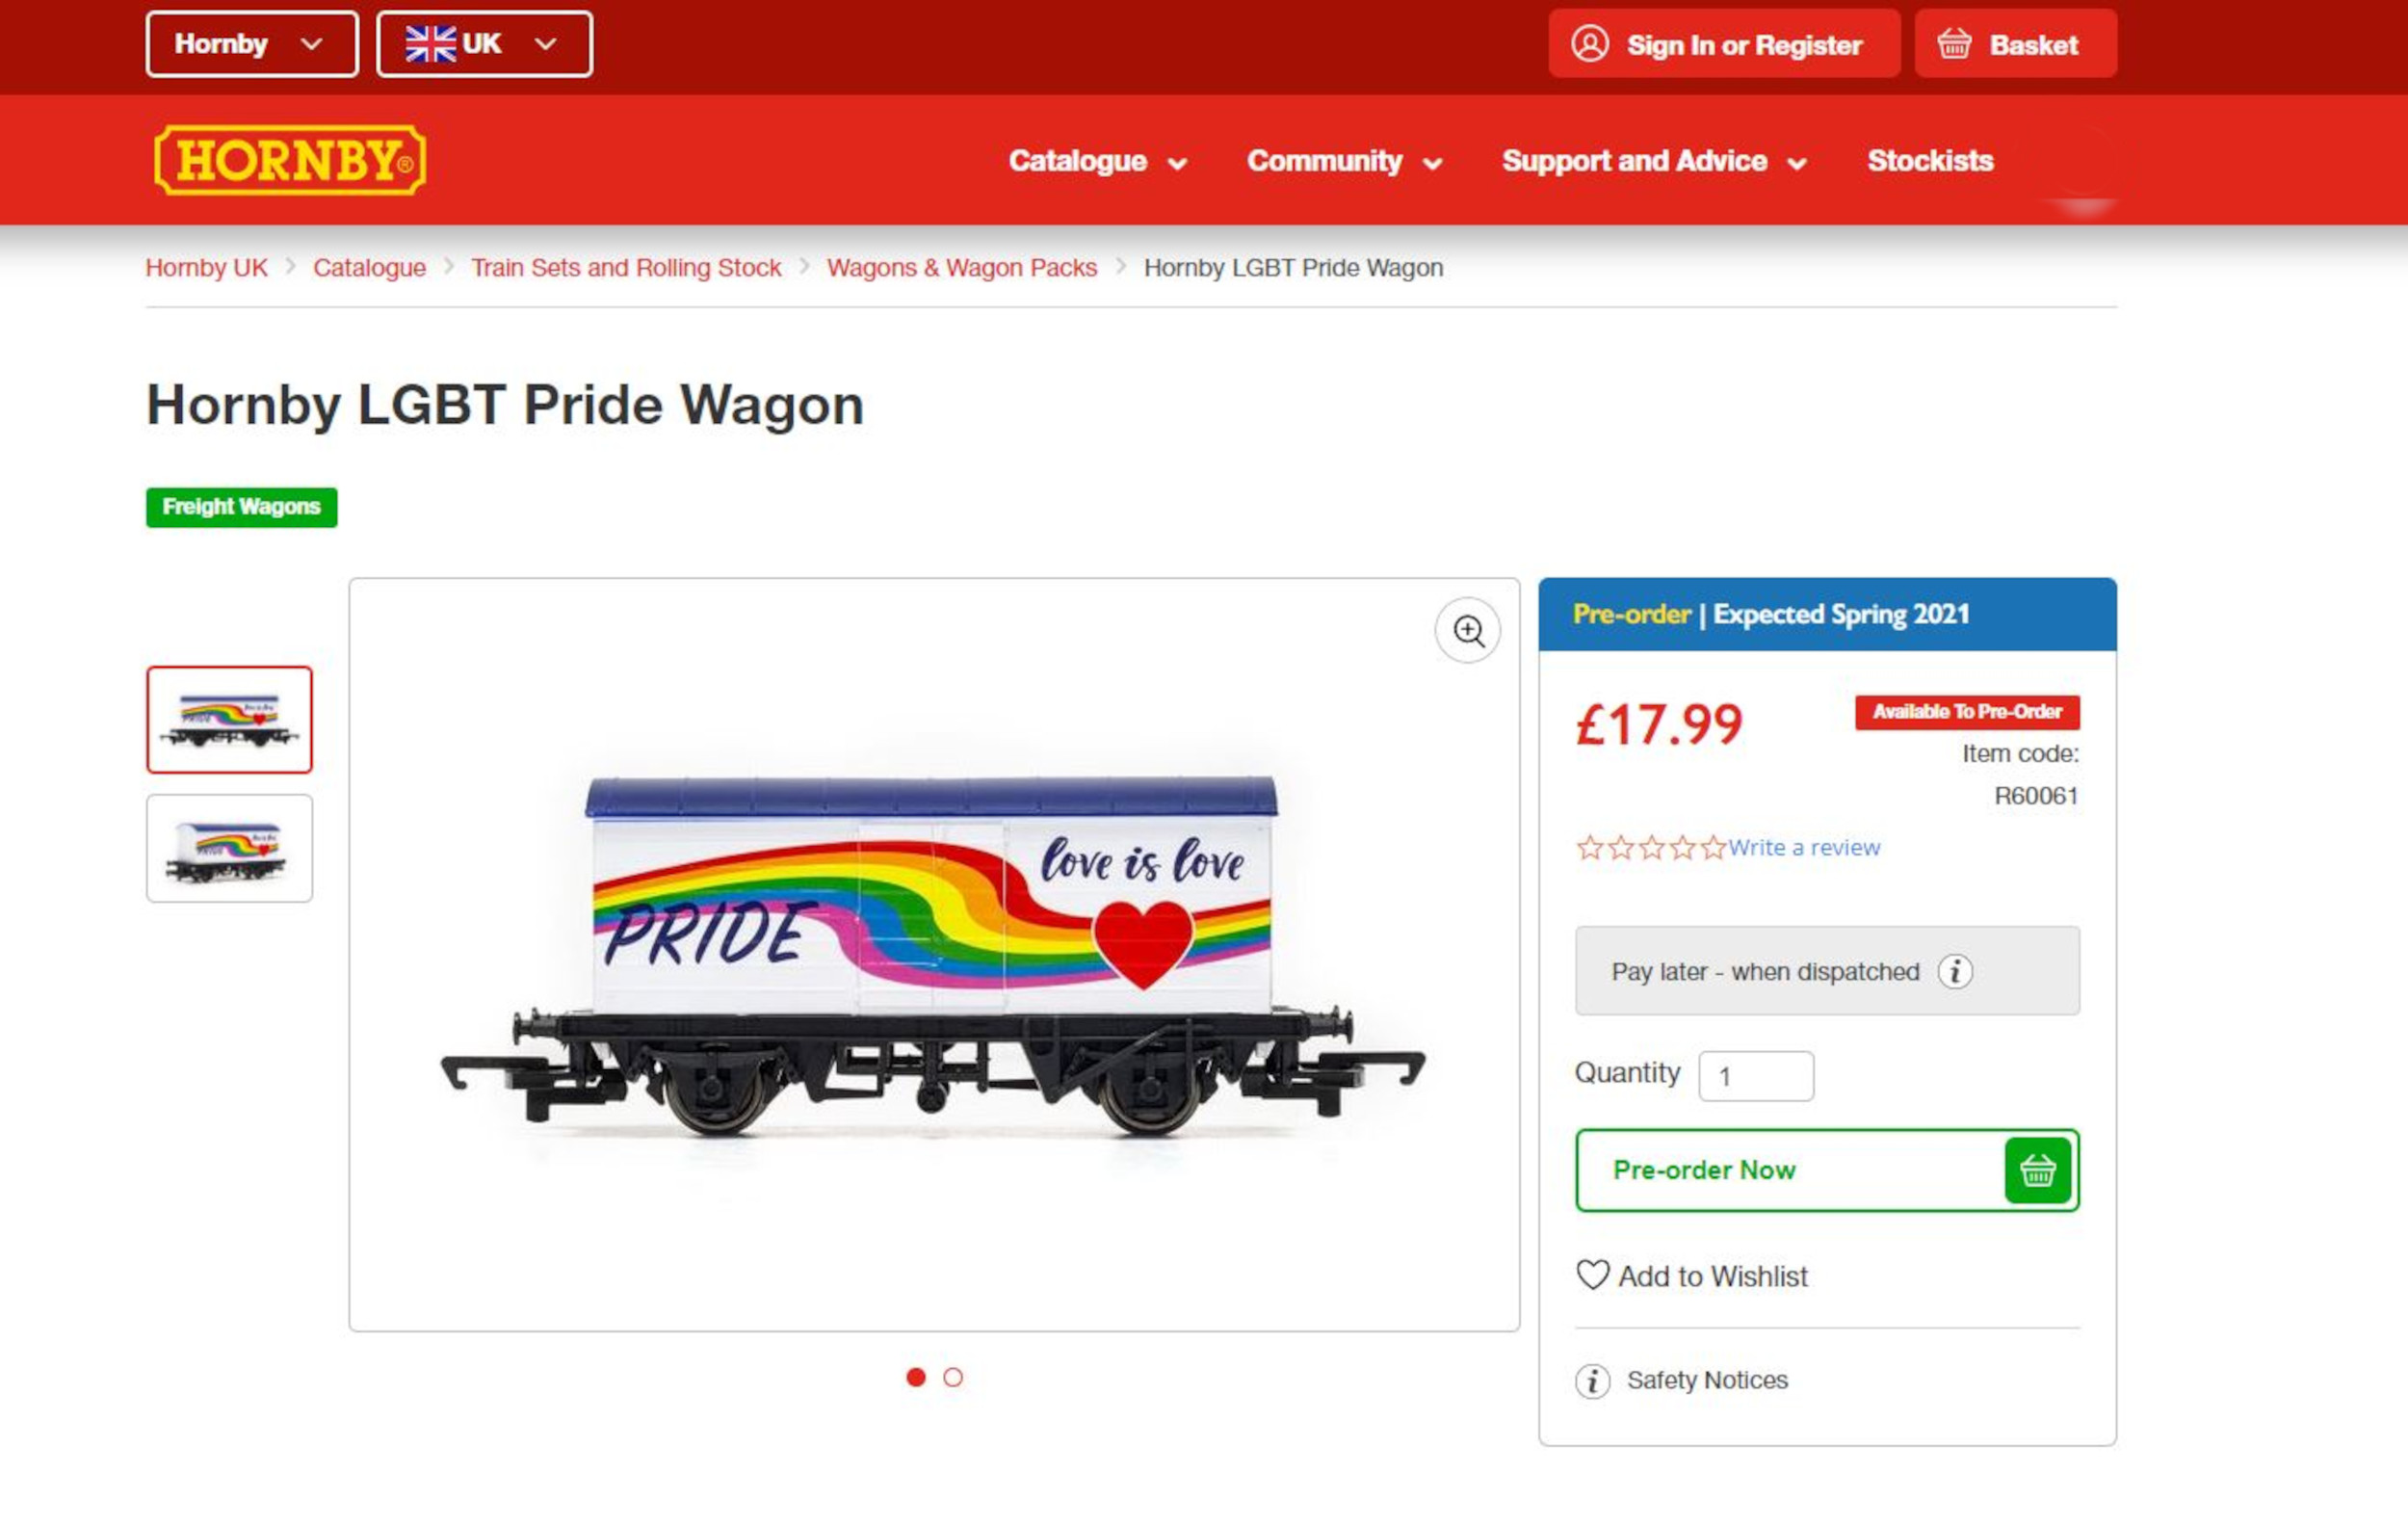 The listing for the Hornby LGBTQ+ wagon on their site - Consumer News UK